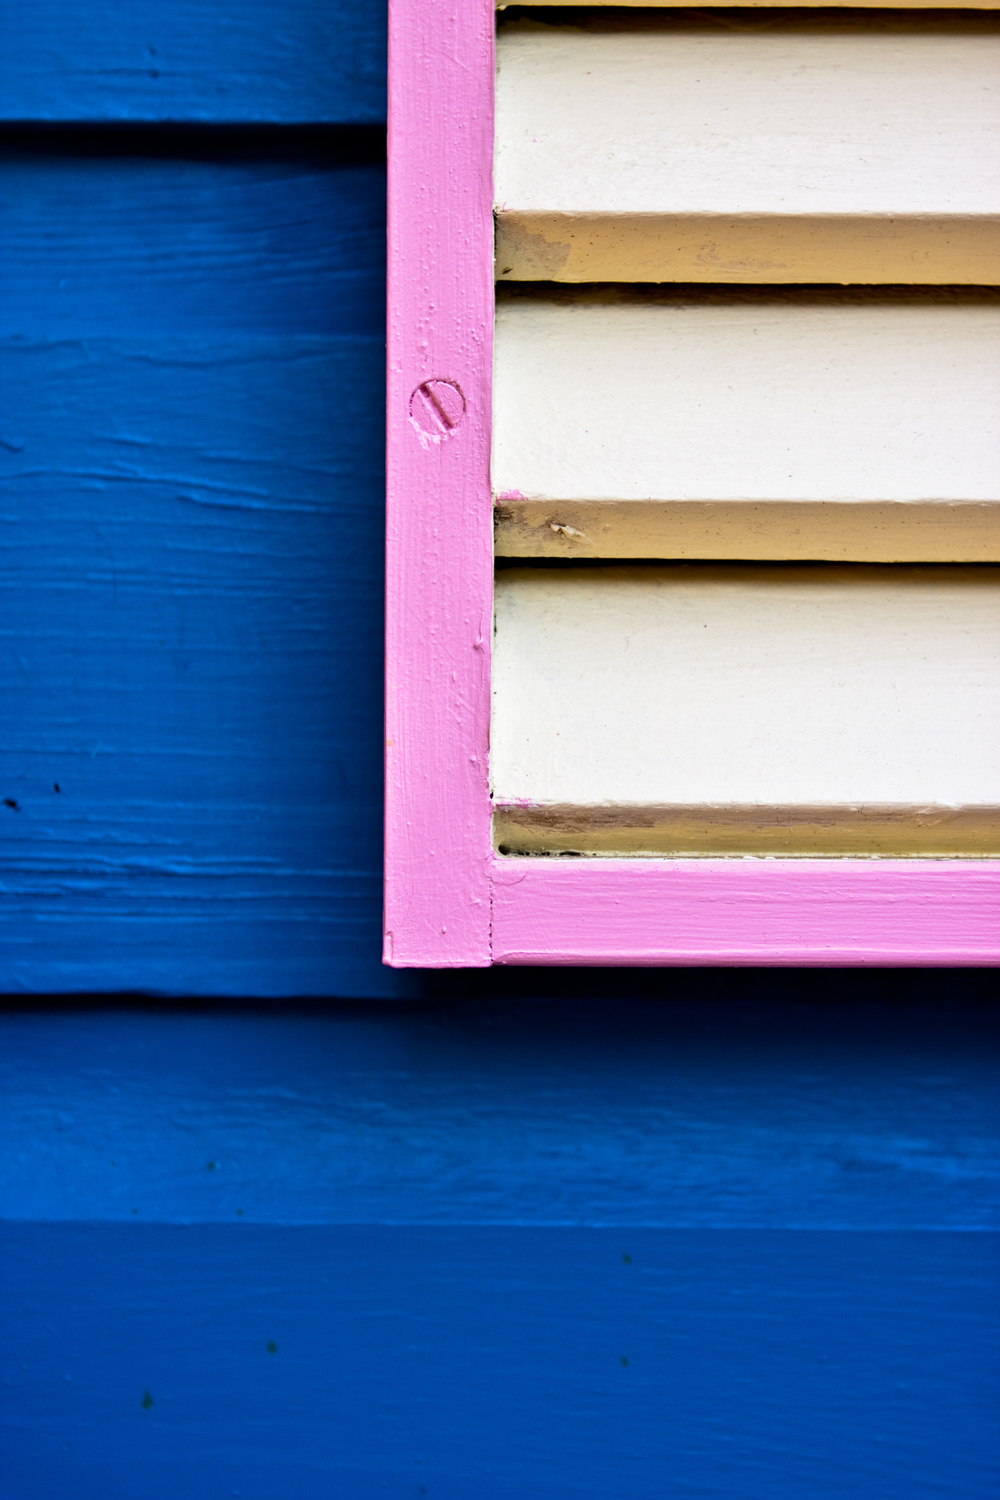 Detail image of pink trim set against blue wood siding.